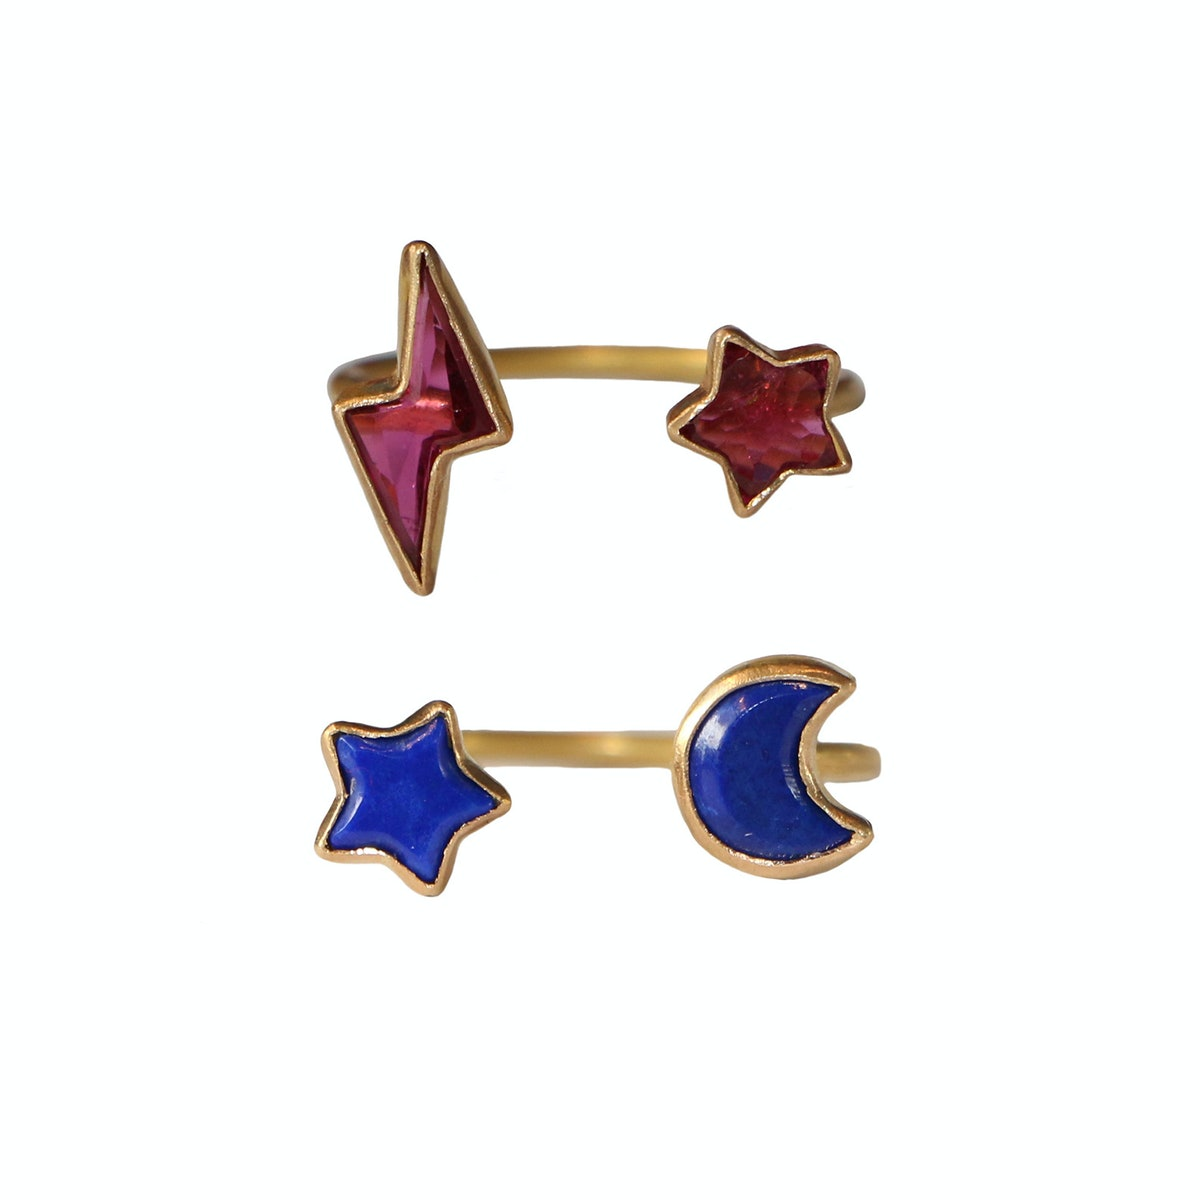 Marie Helene de Taillac rings 22k Yellow Gold and Lapis lazuli Celeste Duet ring